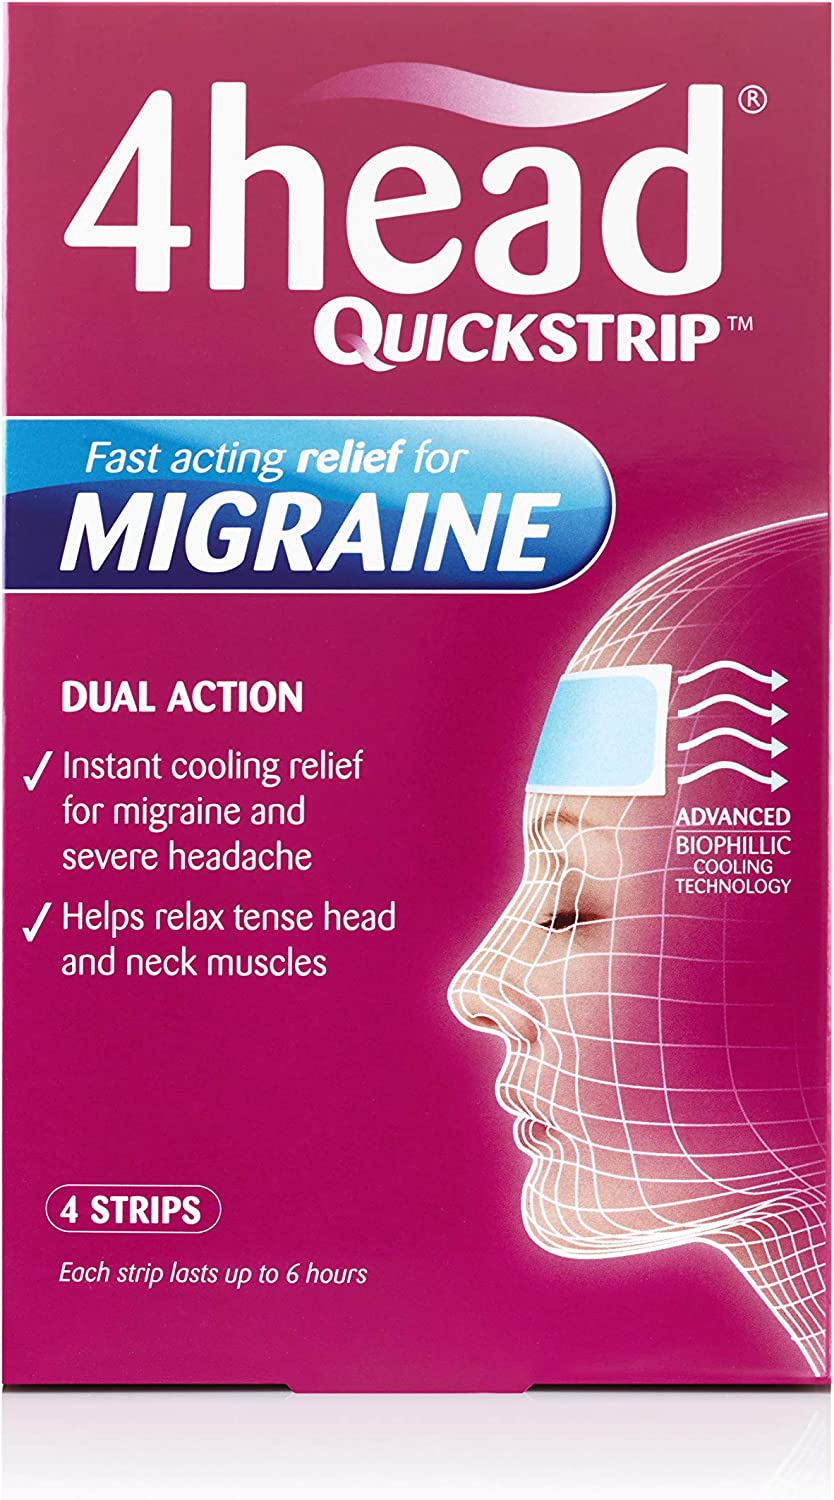 Miami Mall 4Head Quickstrip Headache and Migraine Relief of Nippon regular agency - 4 Pack Strips